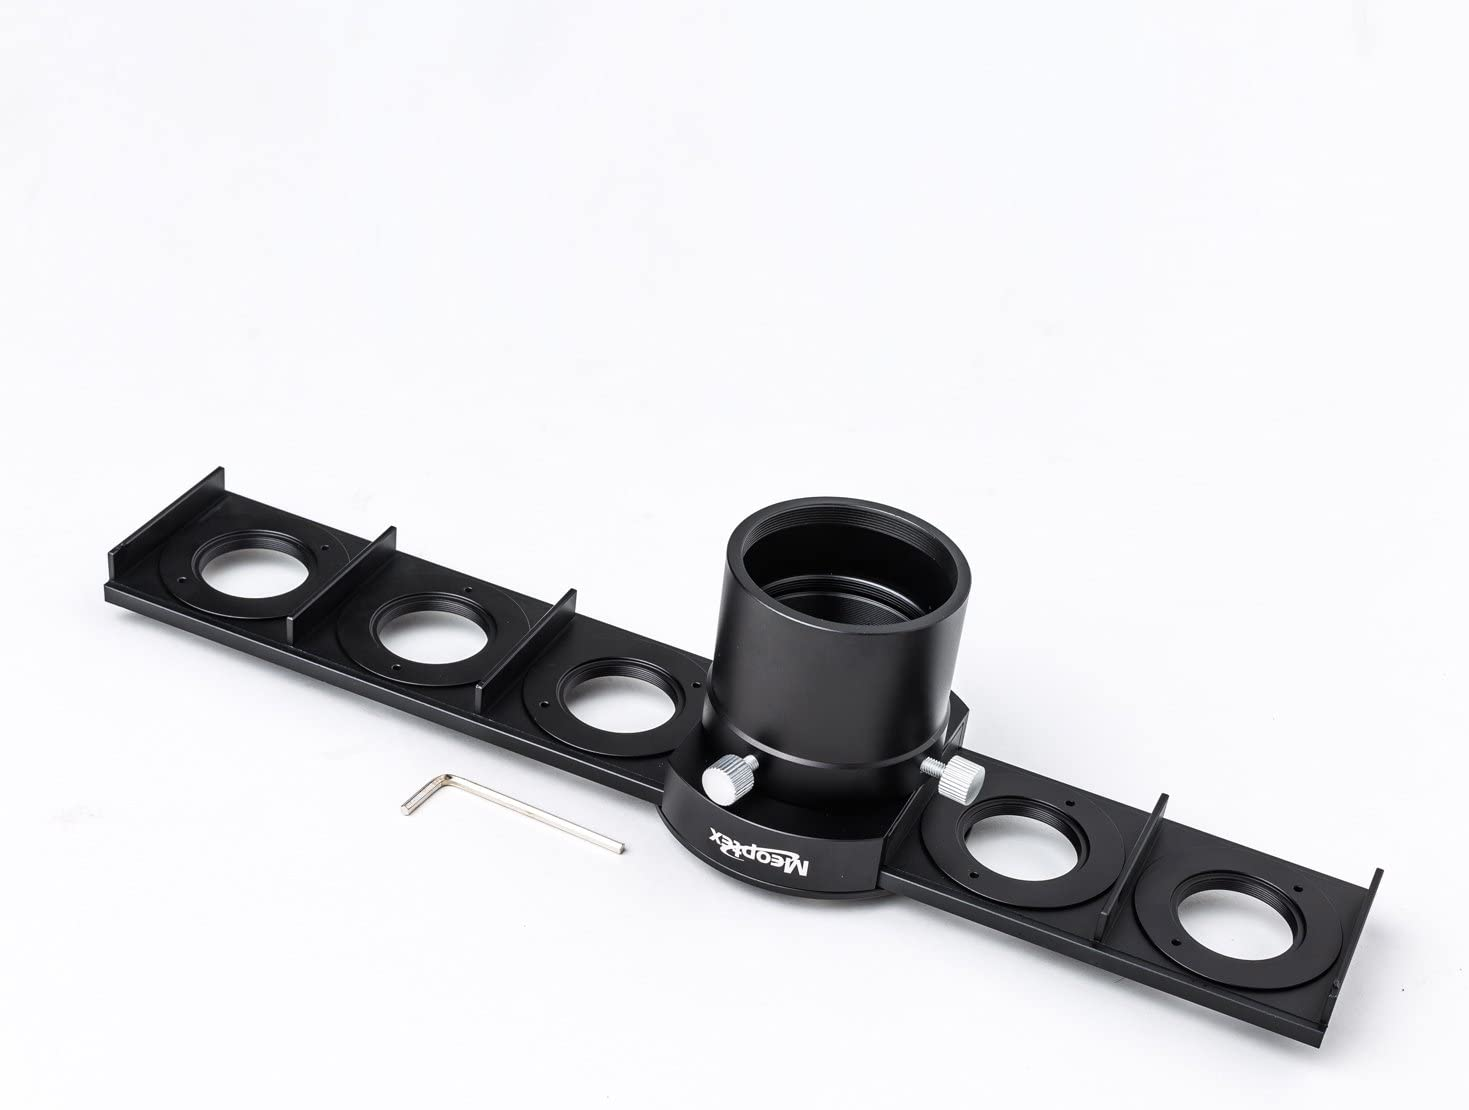 MEOPTEX 6-Slot 2 Filter Slider with six pcs 2 to 1.25 adaptors